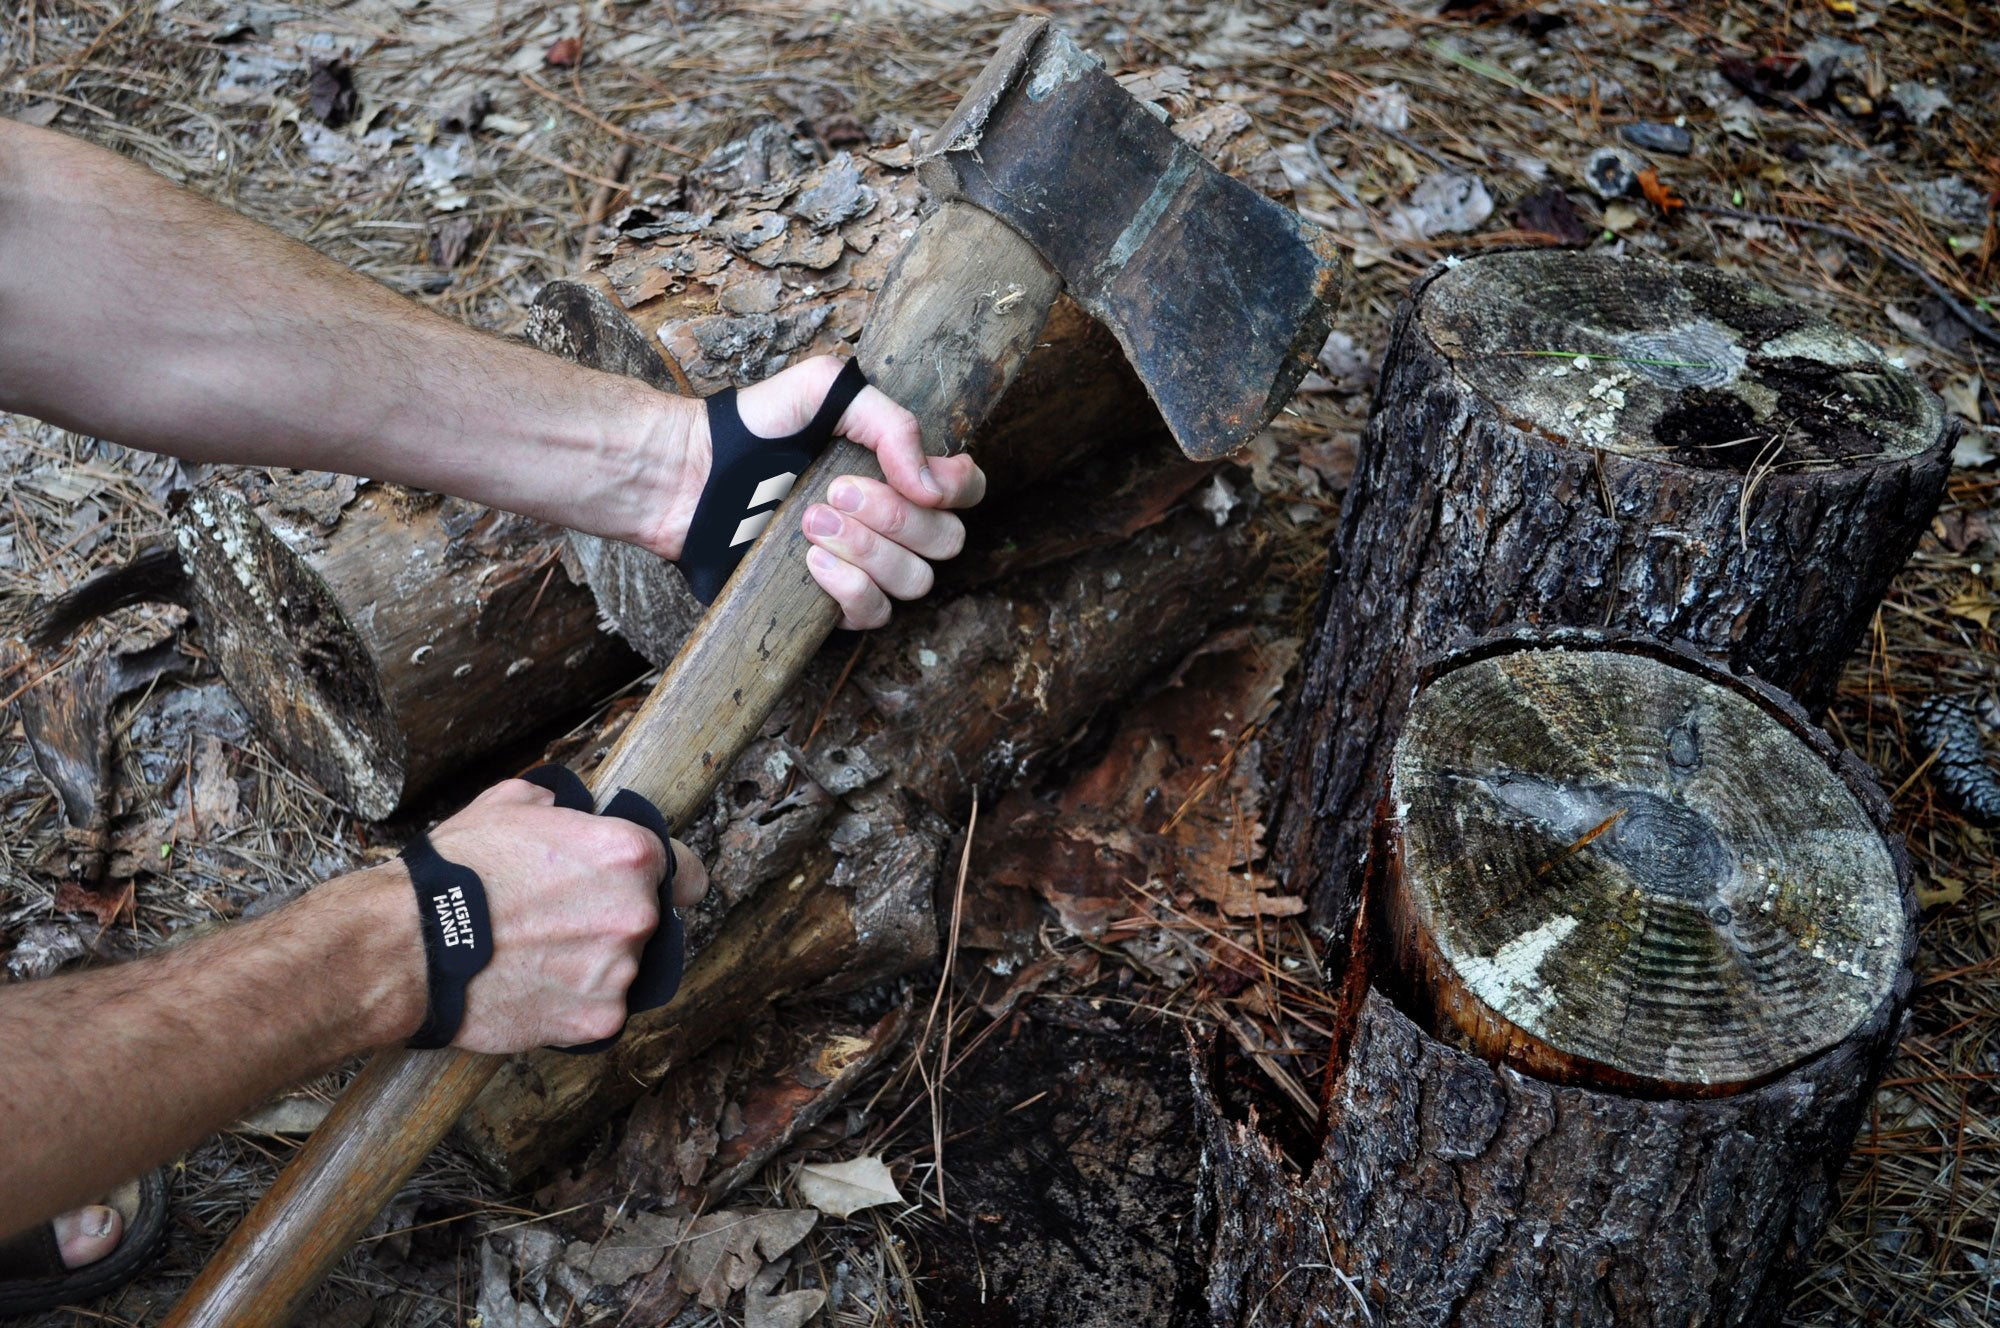 Hand Protection against blisters and vibration when chopping wood with STKR Concepts Tough Skin